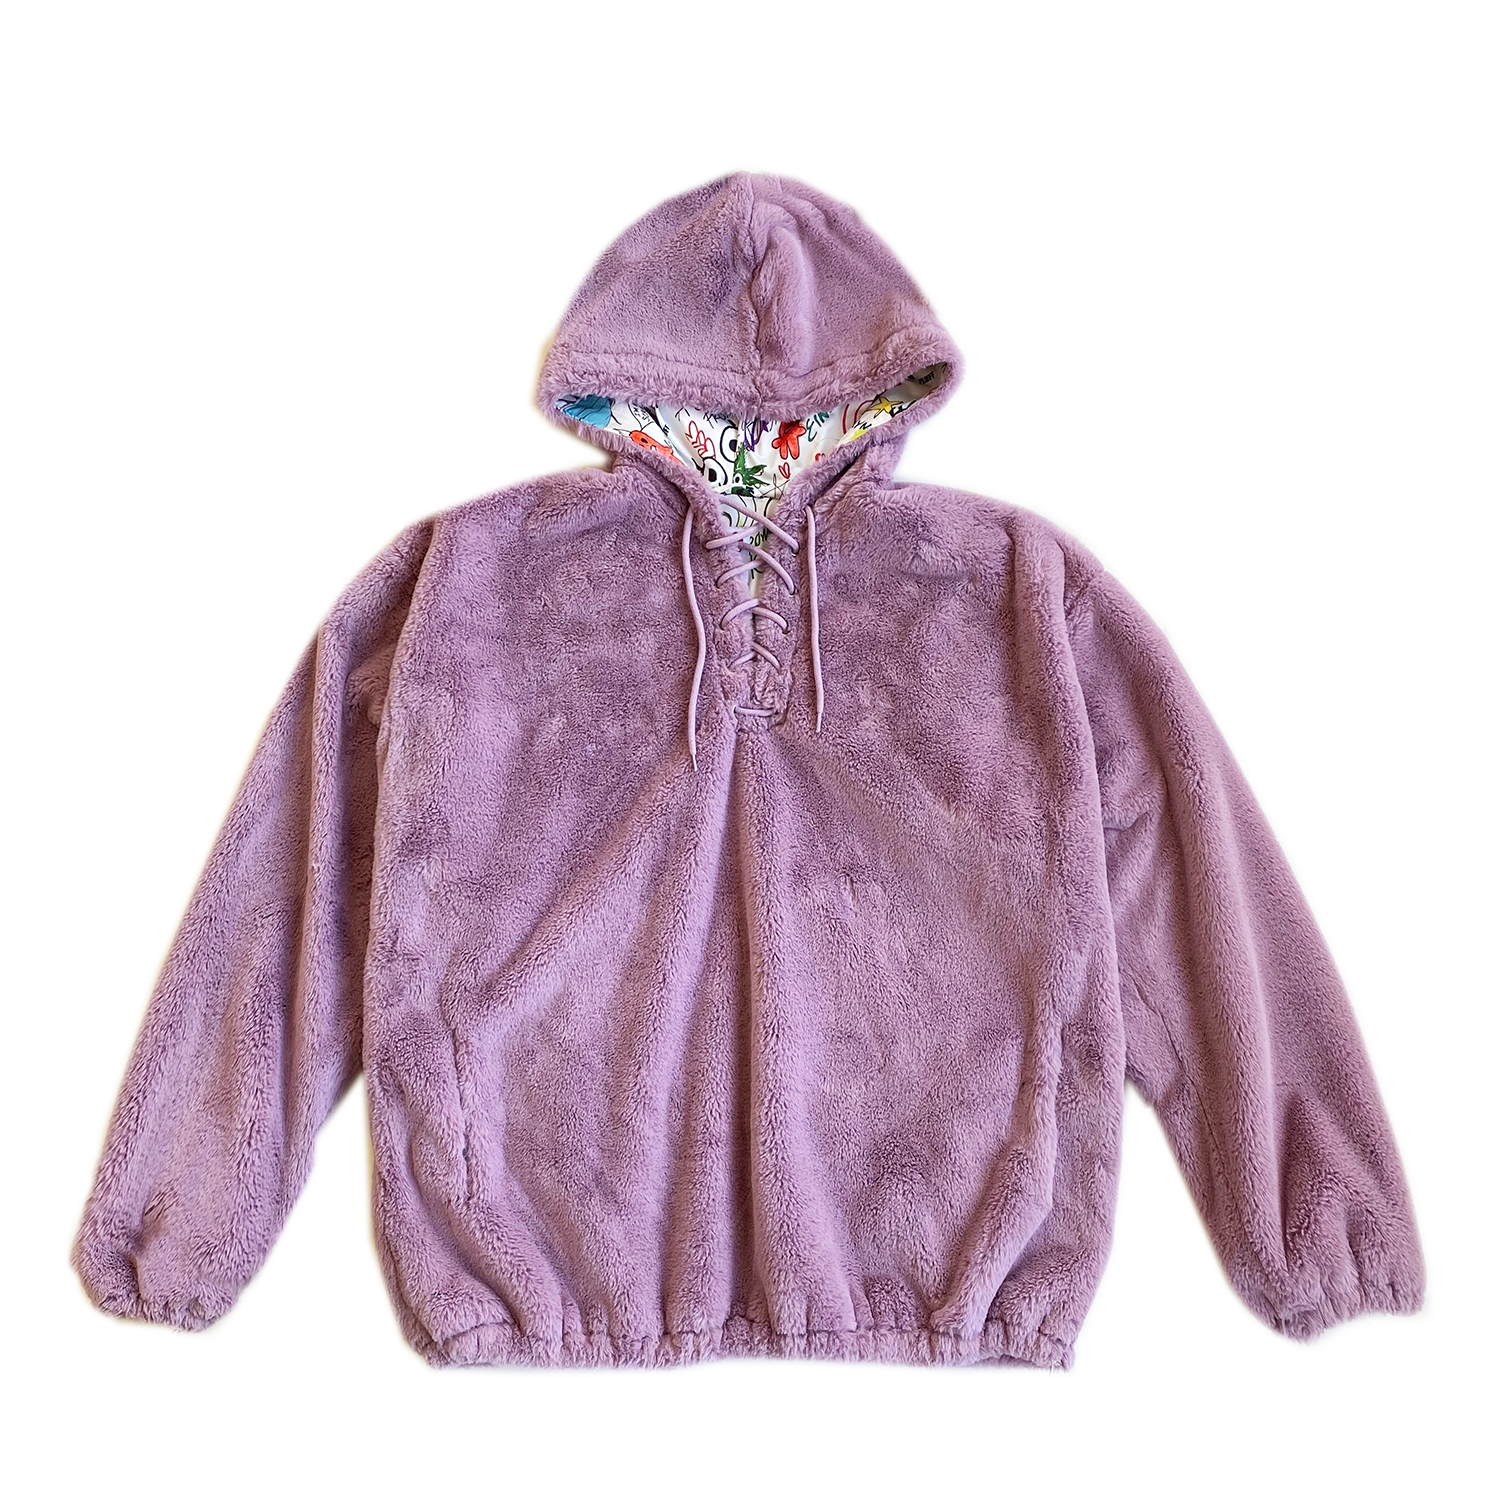 products/recycledteddy_lavenderlaceuphoodie_front.png